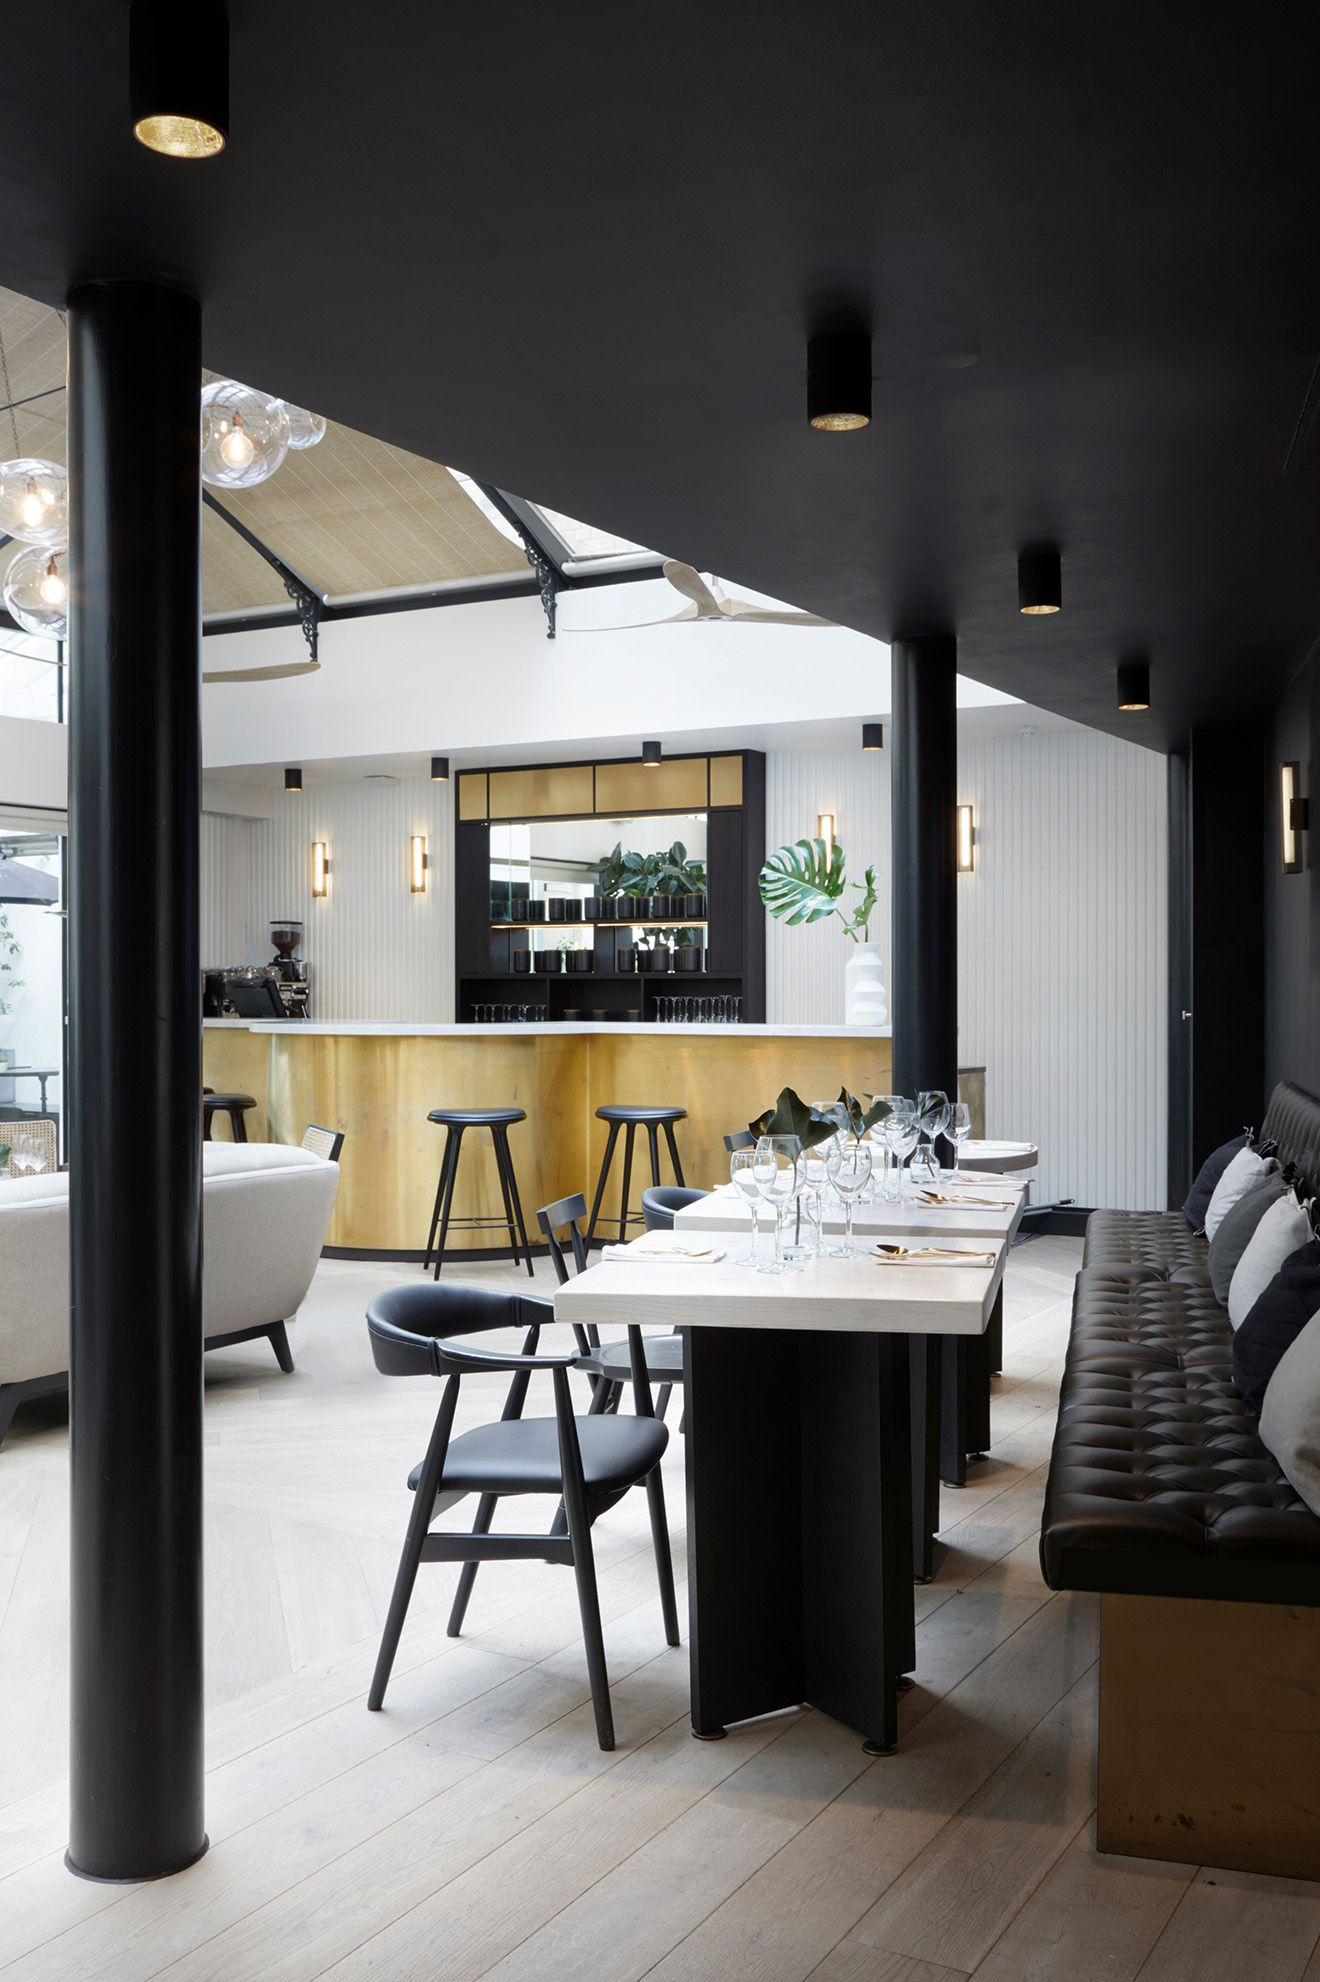 bdfeb586fcc96 Distressed brass bar with black wood barstools - My Hotels Group Chelsea boutique  hotel designed by